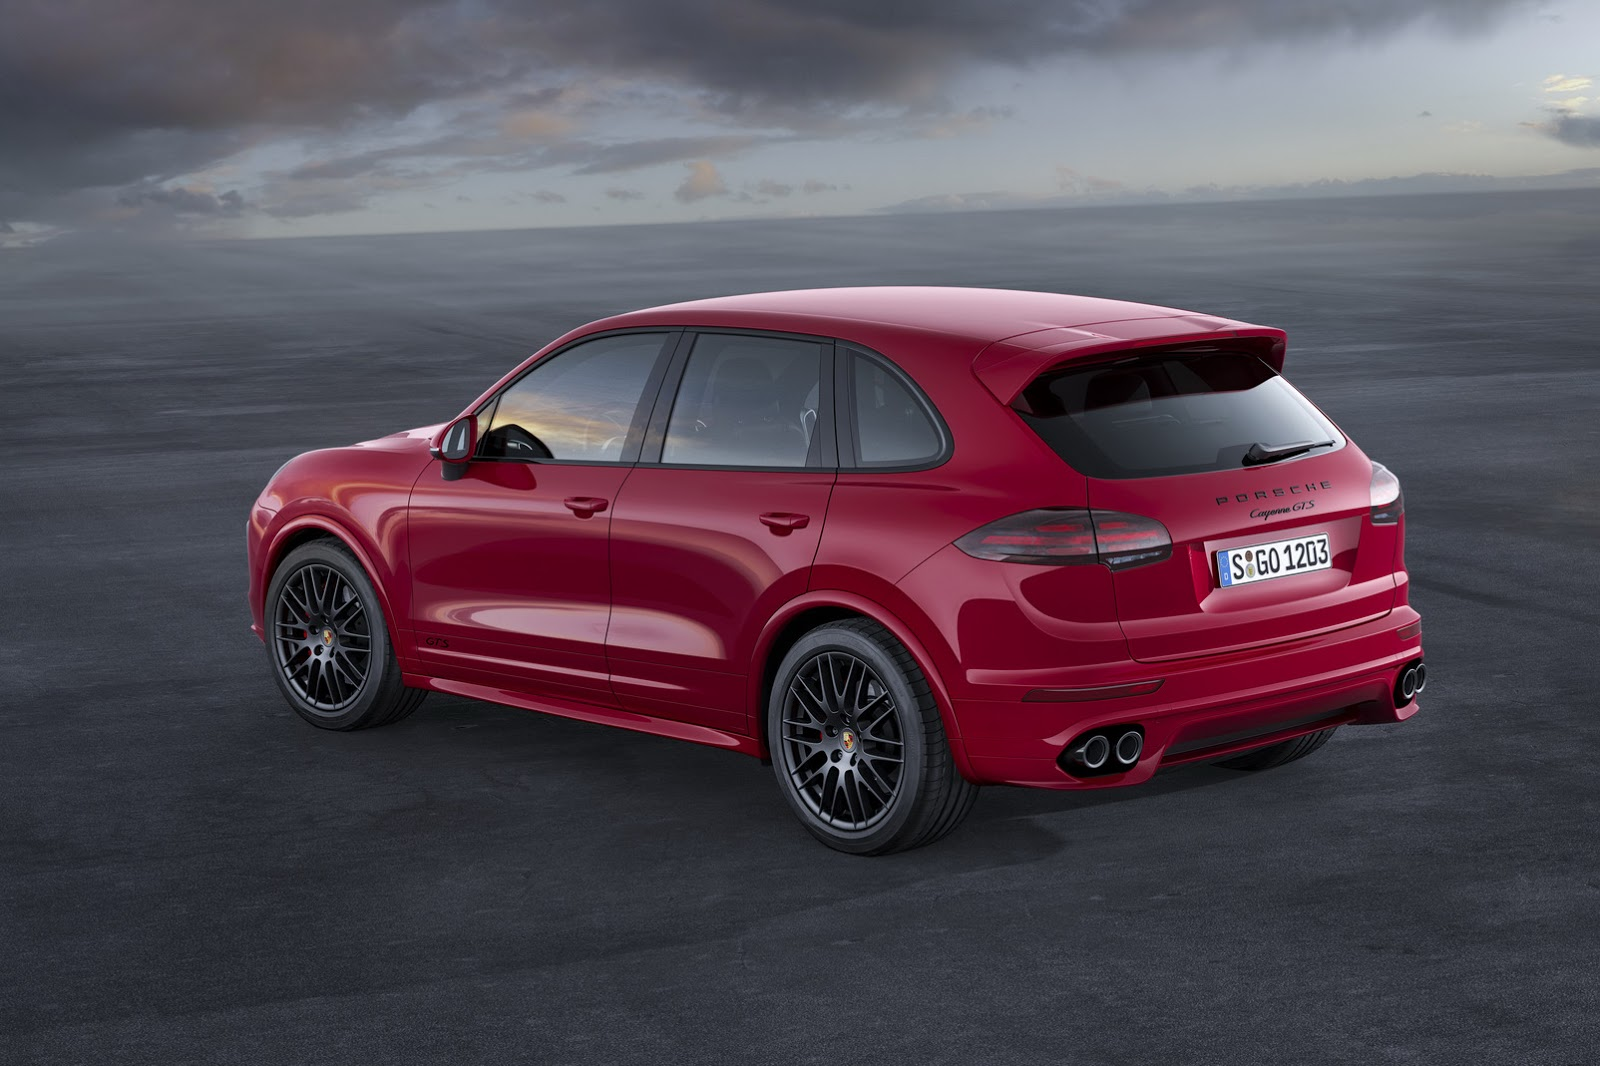 new porsche cayenne gts ditches v8 for bi turbo v6 debuts in la. Black Bedroom Furniture Sets. Home Design Ideas